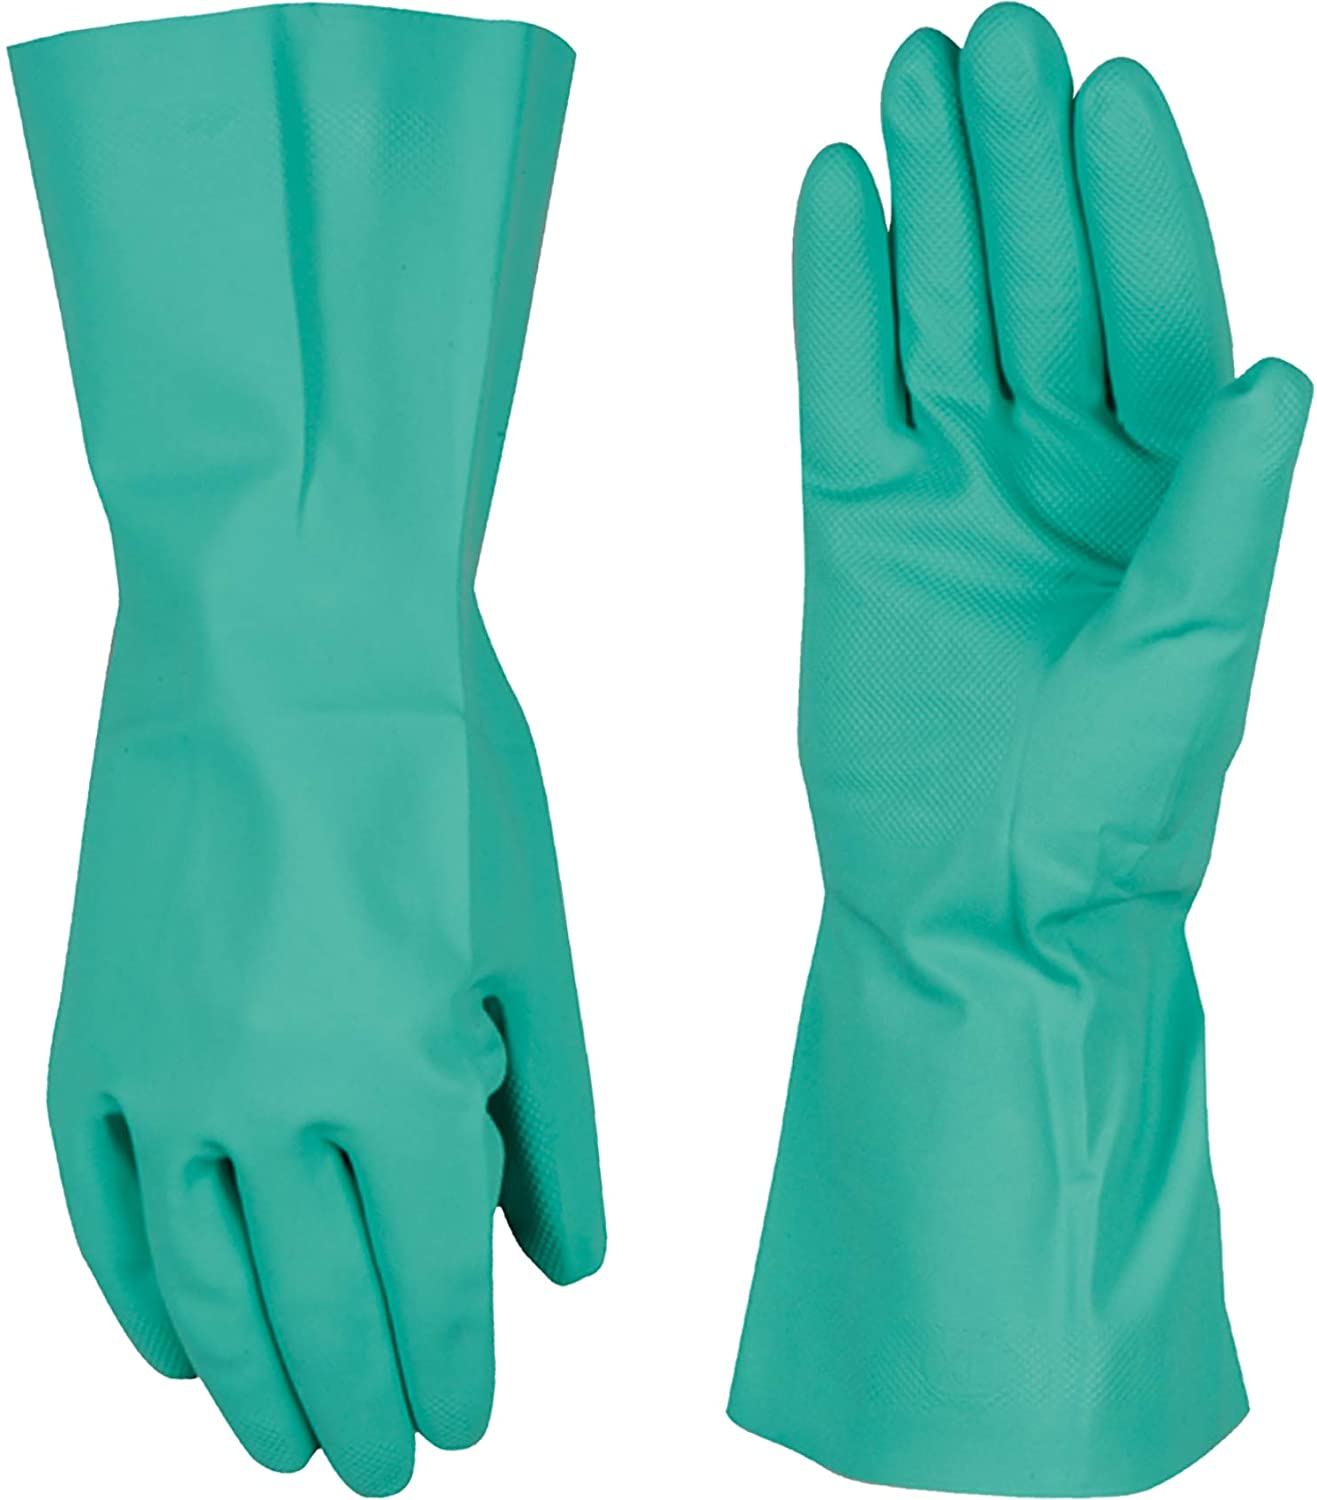 Chemical Resistant Nitrile Gloves, Solvent and Pesticide Resistant, Reusable, Large (Wells Lamont 178L) - Work Gloves -